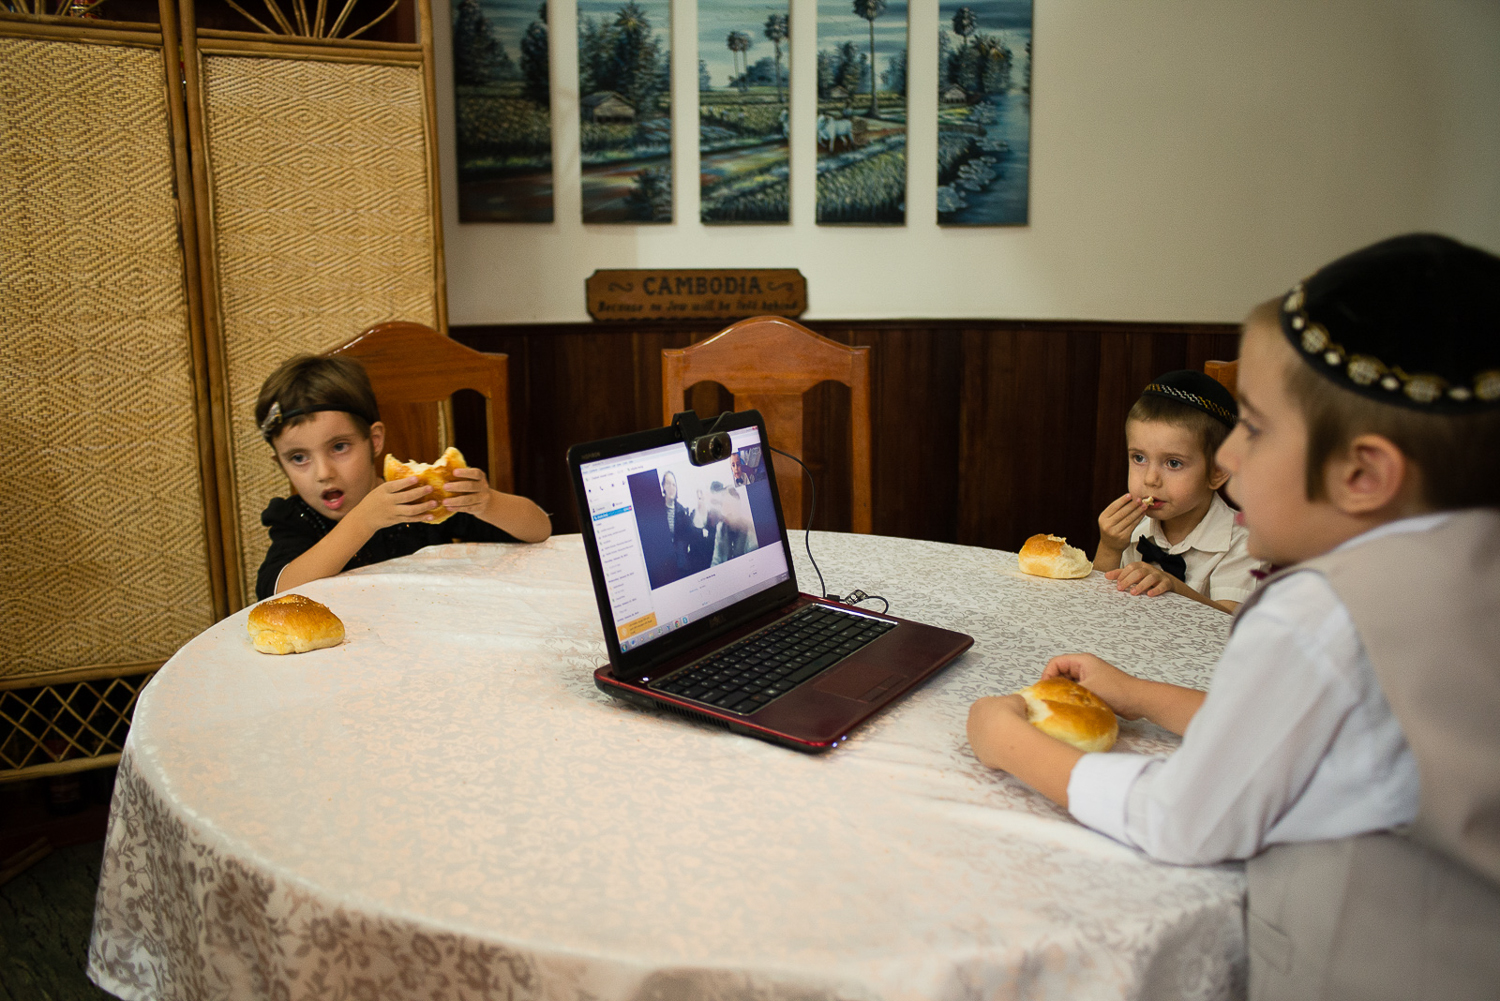 Mushka, Shmulik, and Zalman talk to their grandparents in Israel via Skype on the occasion of Moshe's Bris.